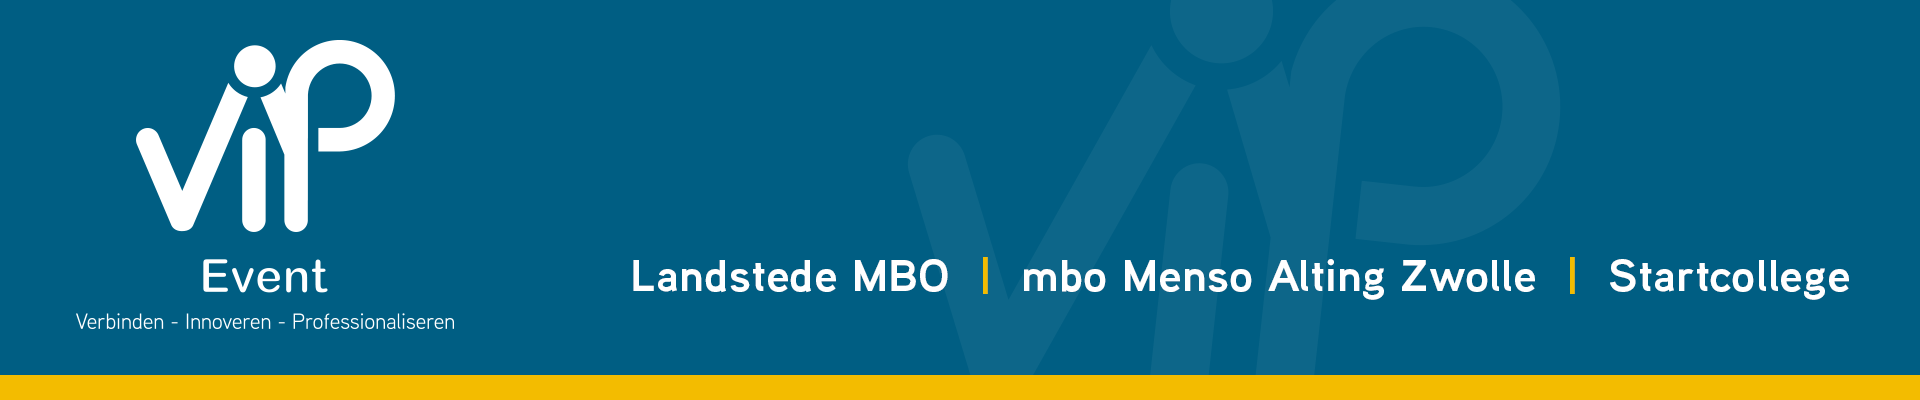 mbo v.i.p.-event 2019, aanmelding workshopgevers